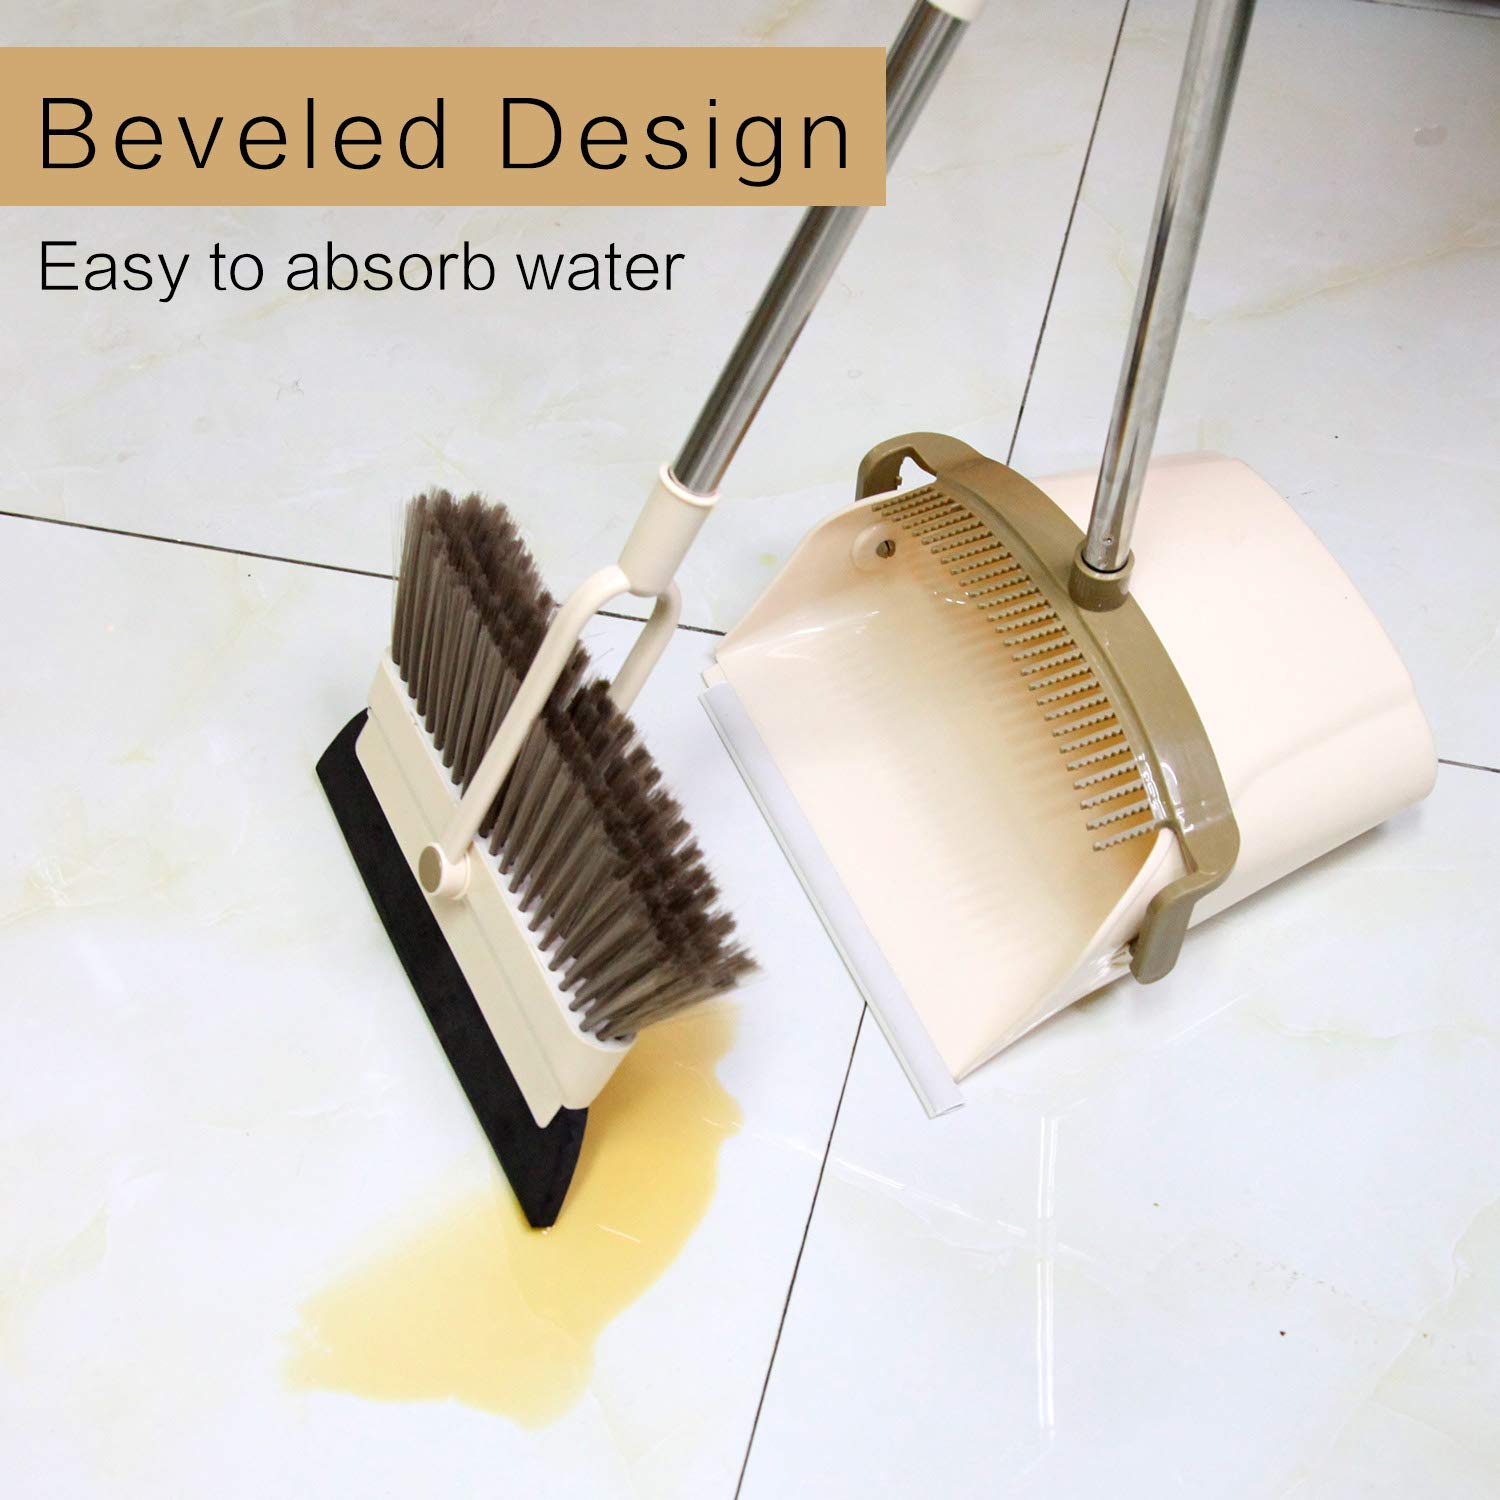 MOCREO Dustpan and Broom and Floor Squeegee Set, Dustpan Cleans Broom Combo with Long Handle For Home Kitchen Room/Office/Lobby Floor, Use Upright Stand Up Dustpan Broom & Squeegee Set by MOCREO (Image #5)